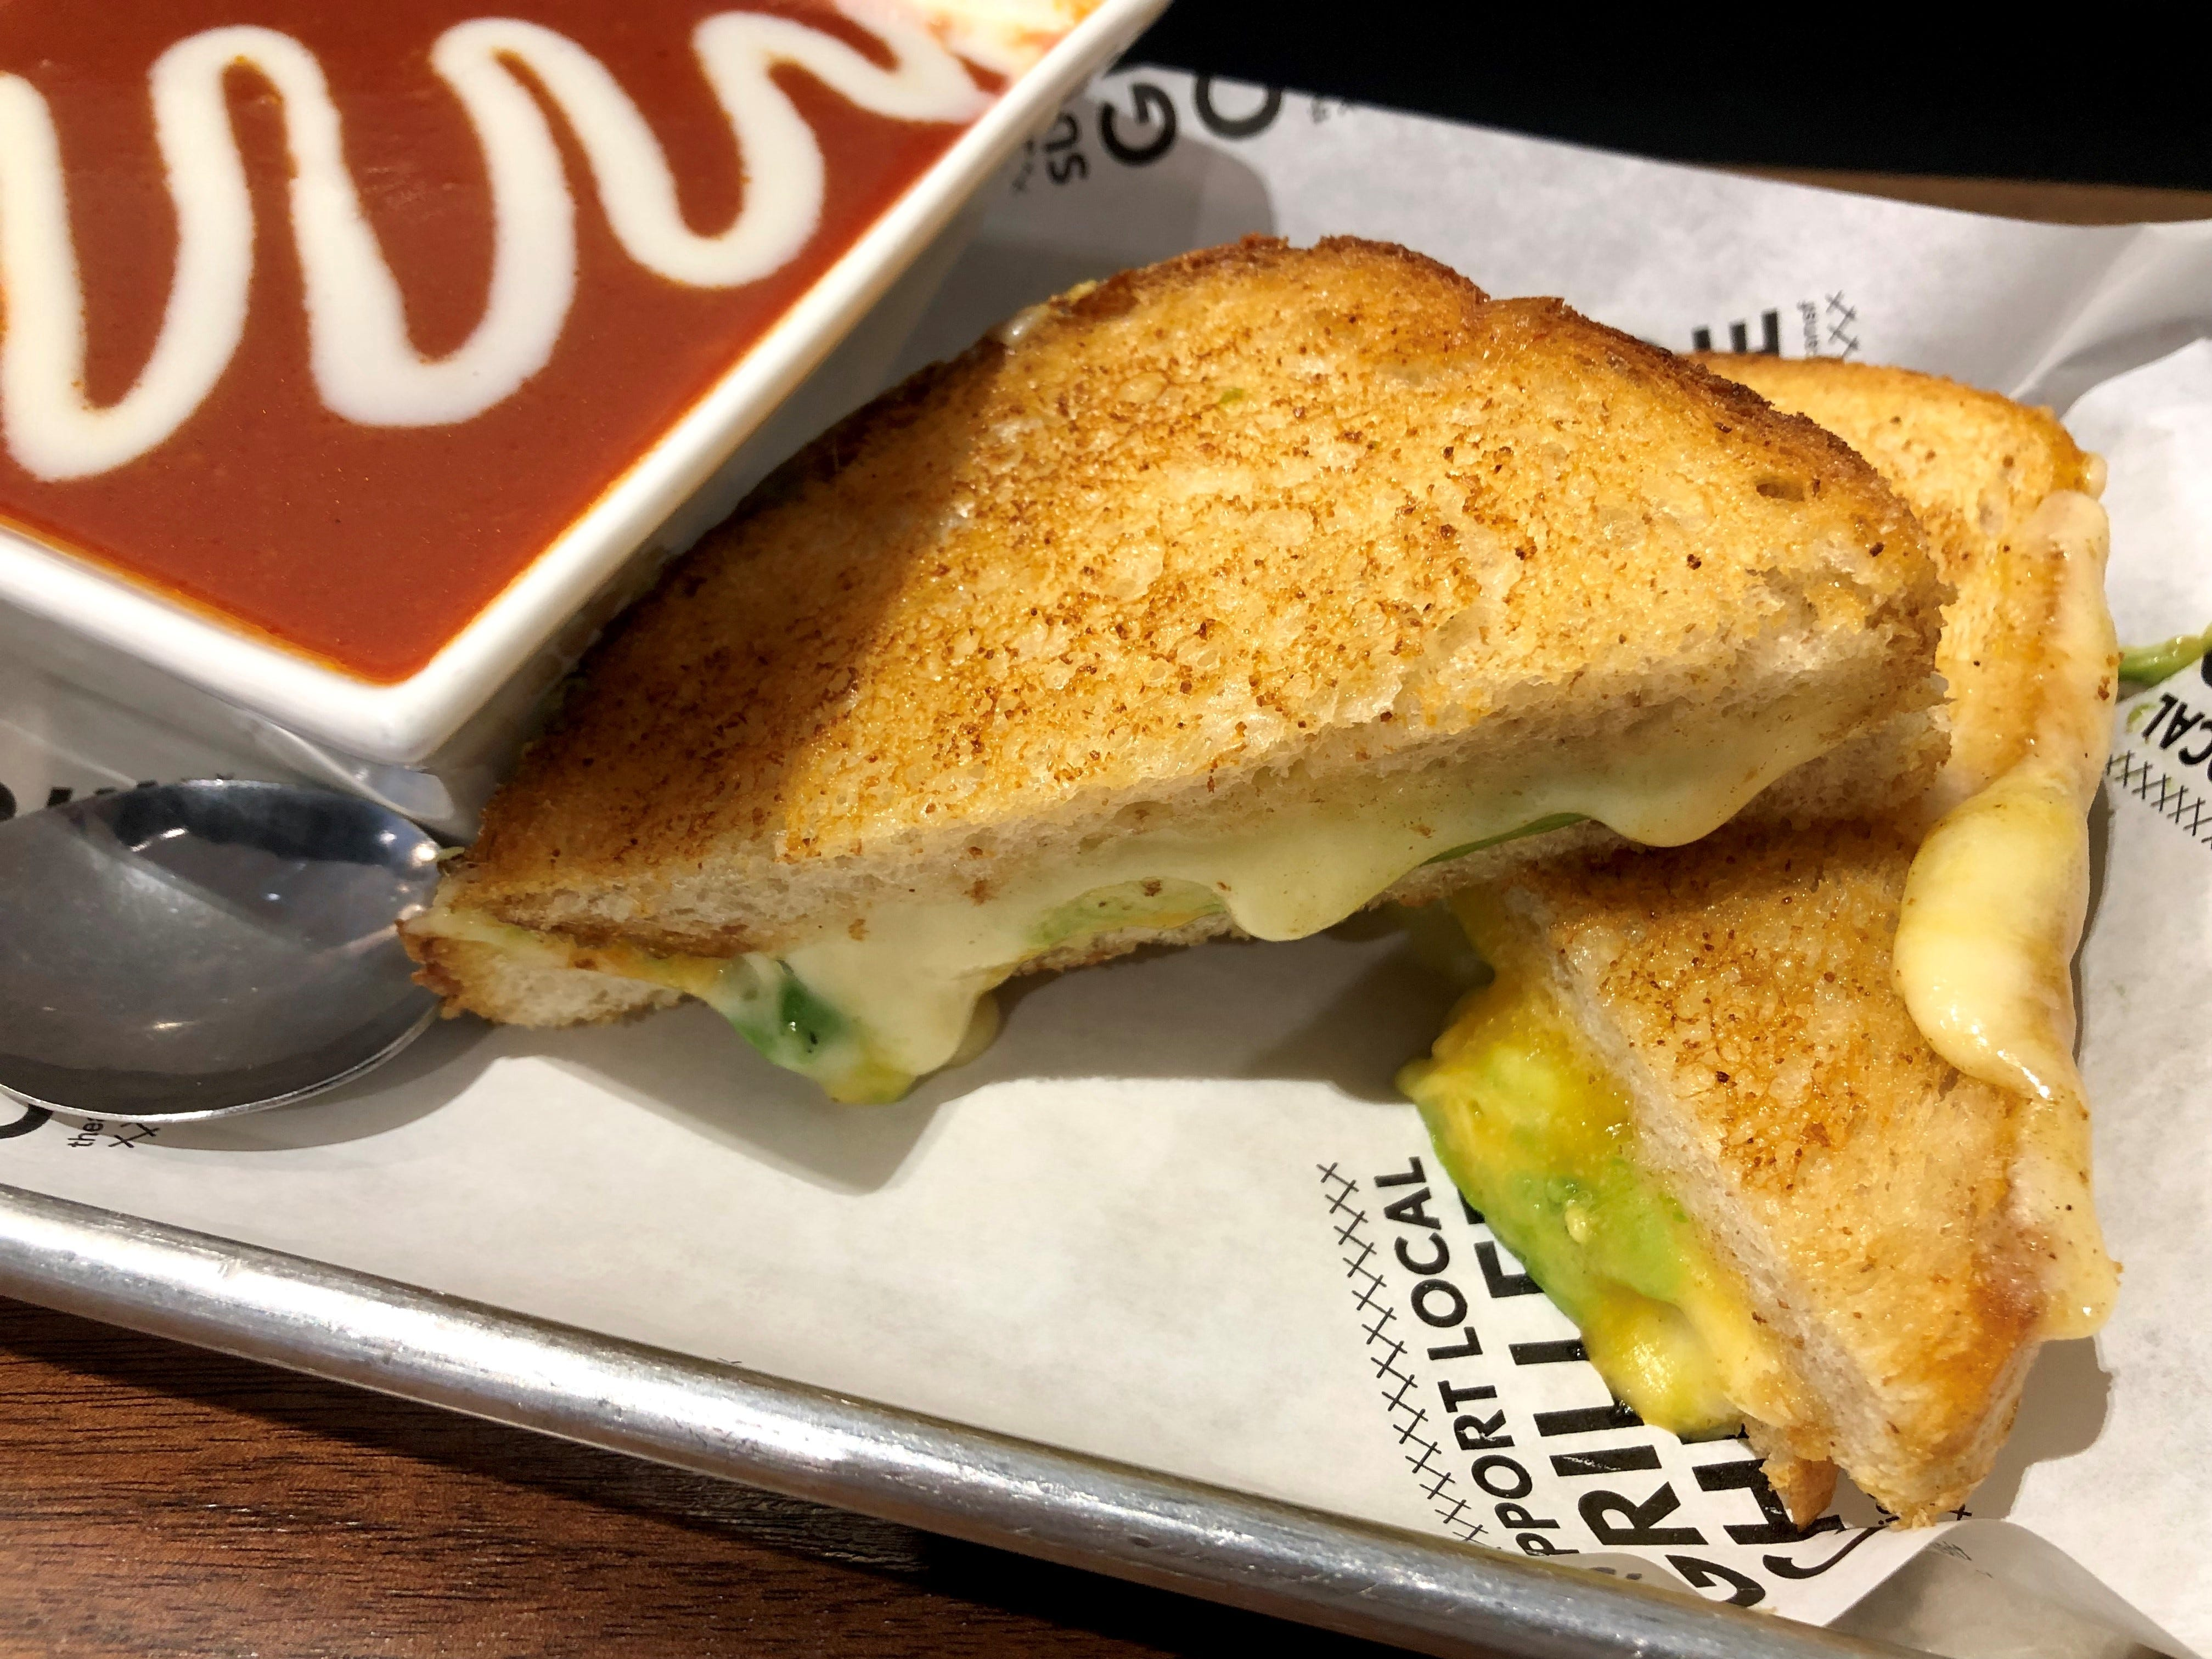 The American Grilled Cheese Kitchen's classic Mousetrap sandwich is made with Tillamook cheddar, Monterey jack and havarti on sourdough. You can avocado for $1.50.